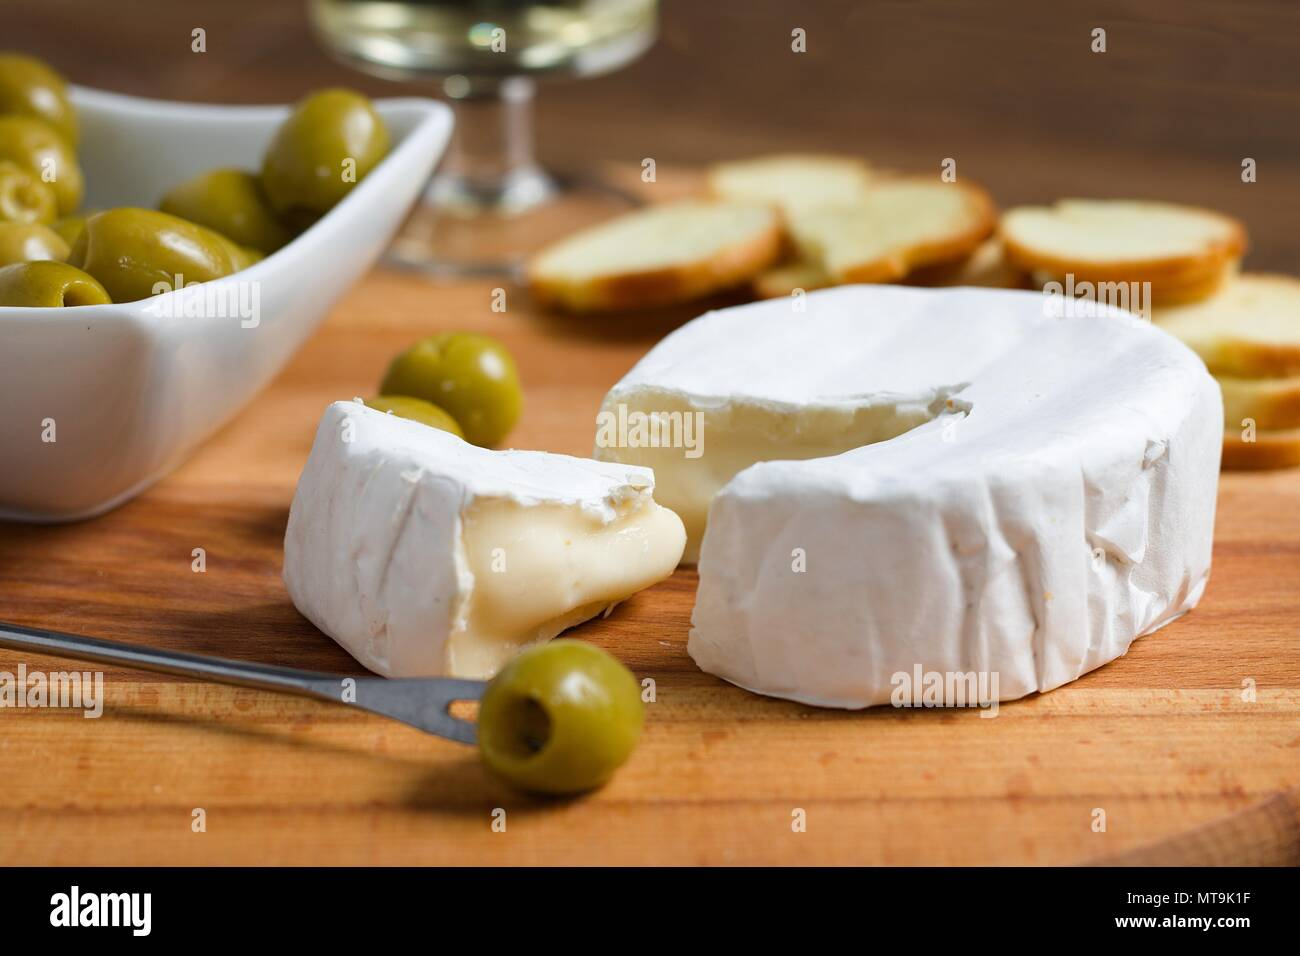 Soft Cheese With White Rind Camembert Or Brie On Wooden Board With Roasted Bread Slices Olives And White Wine Stock Photo Alamy